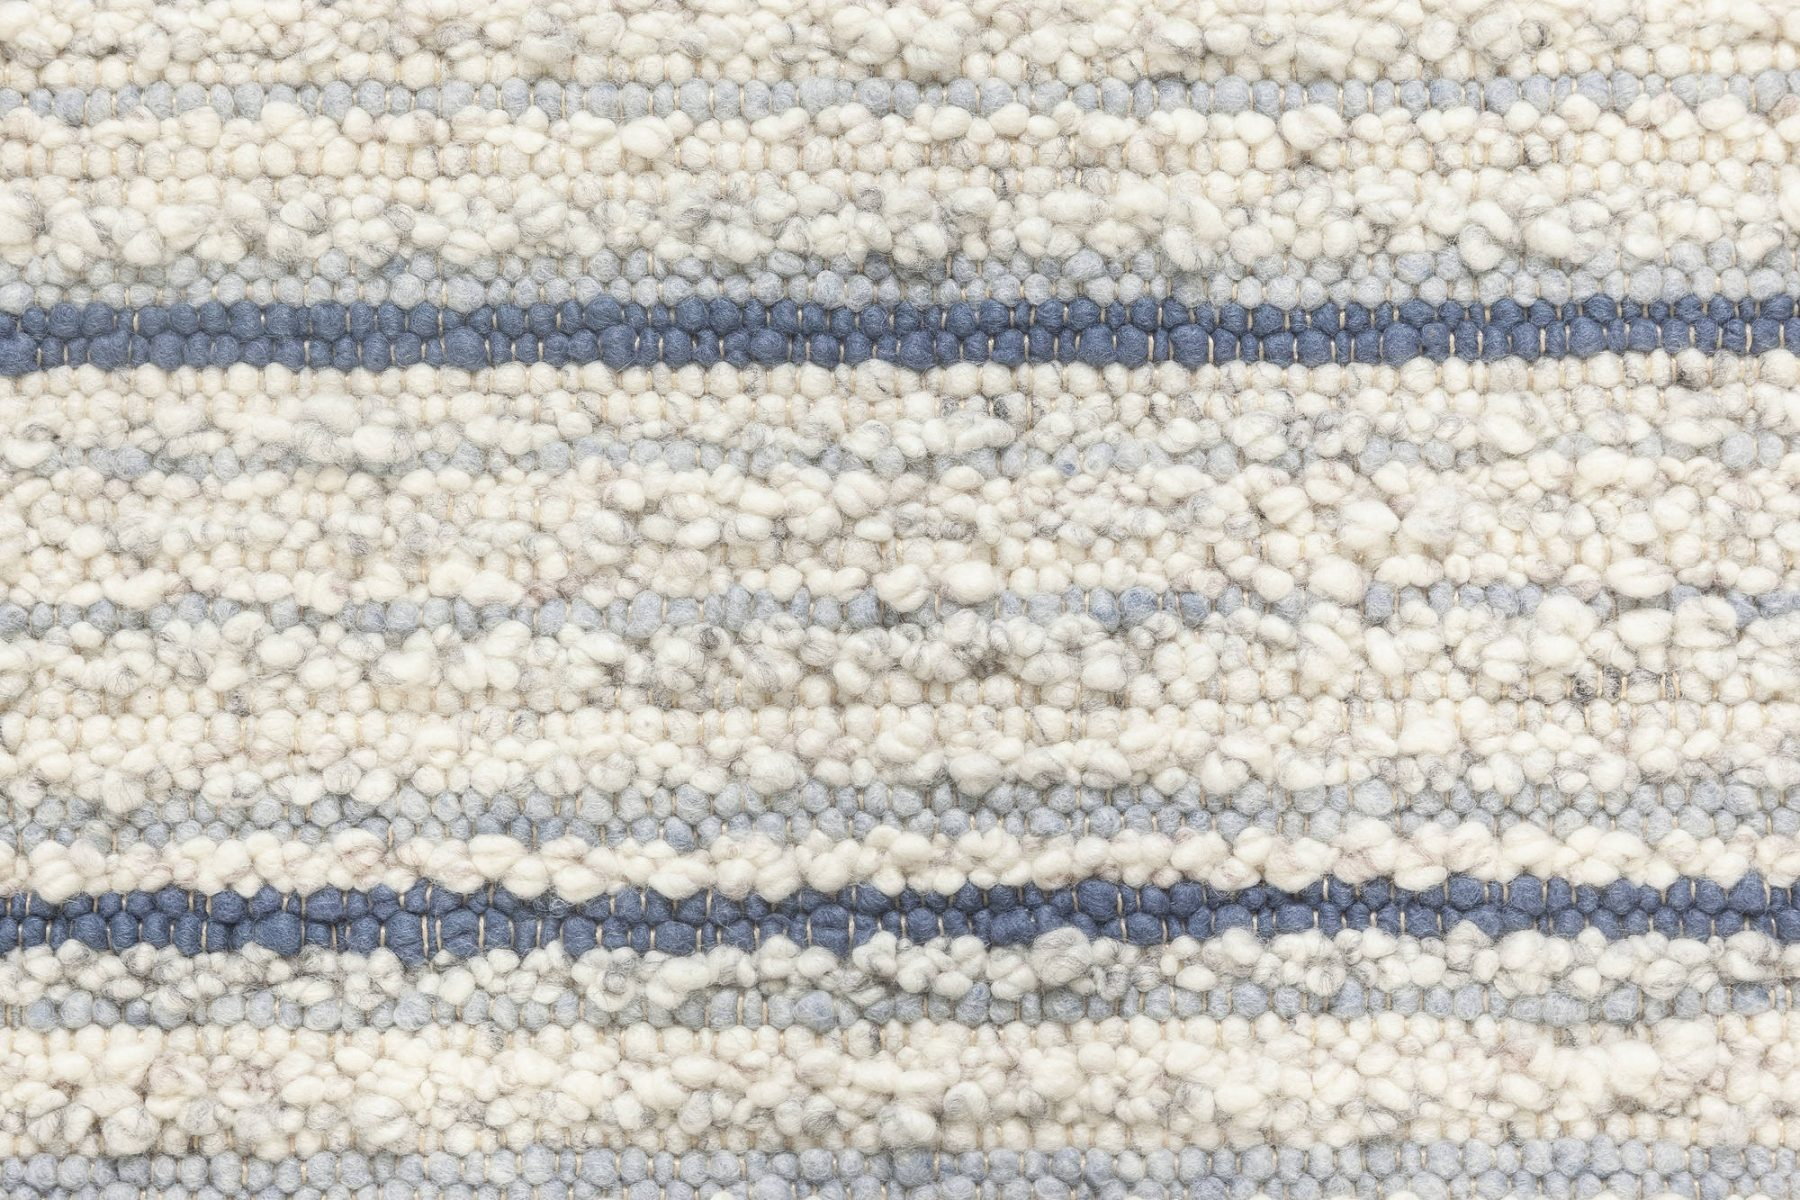 Alpine Rug Handwoven in Natural Lambswool with Blue Stripes N11951